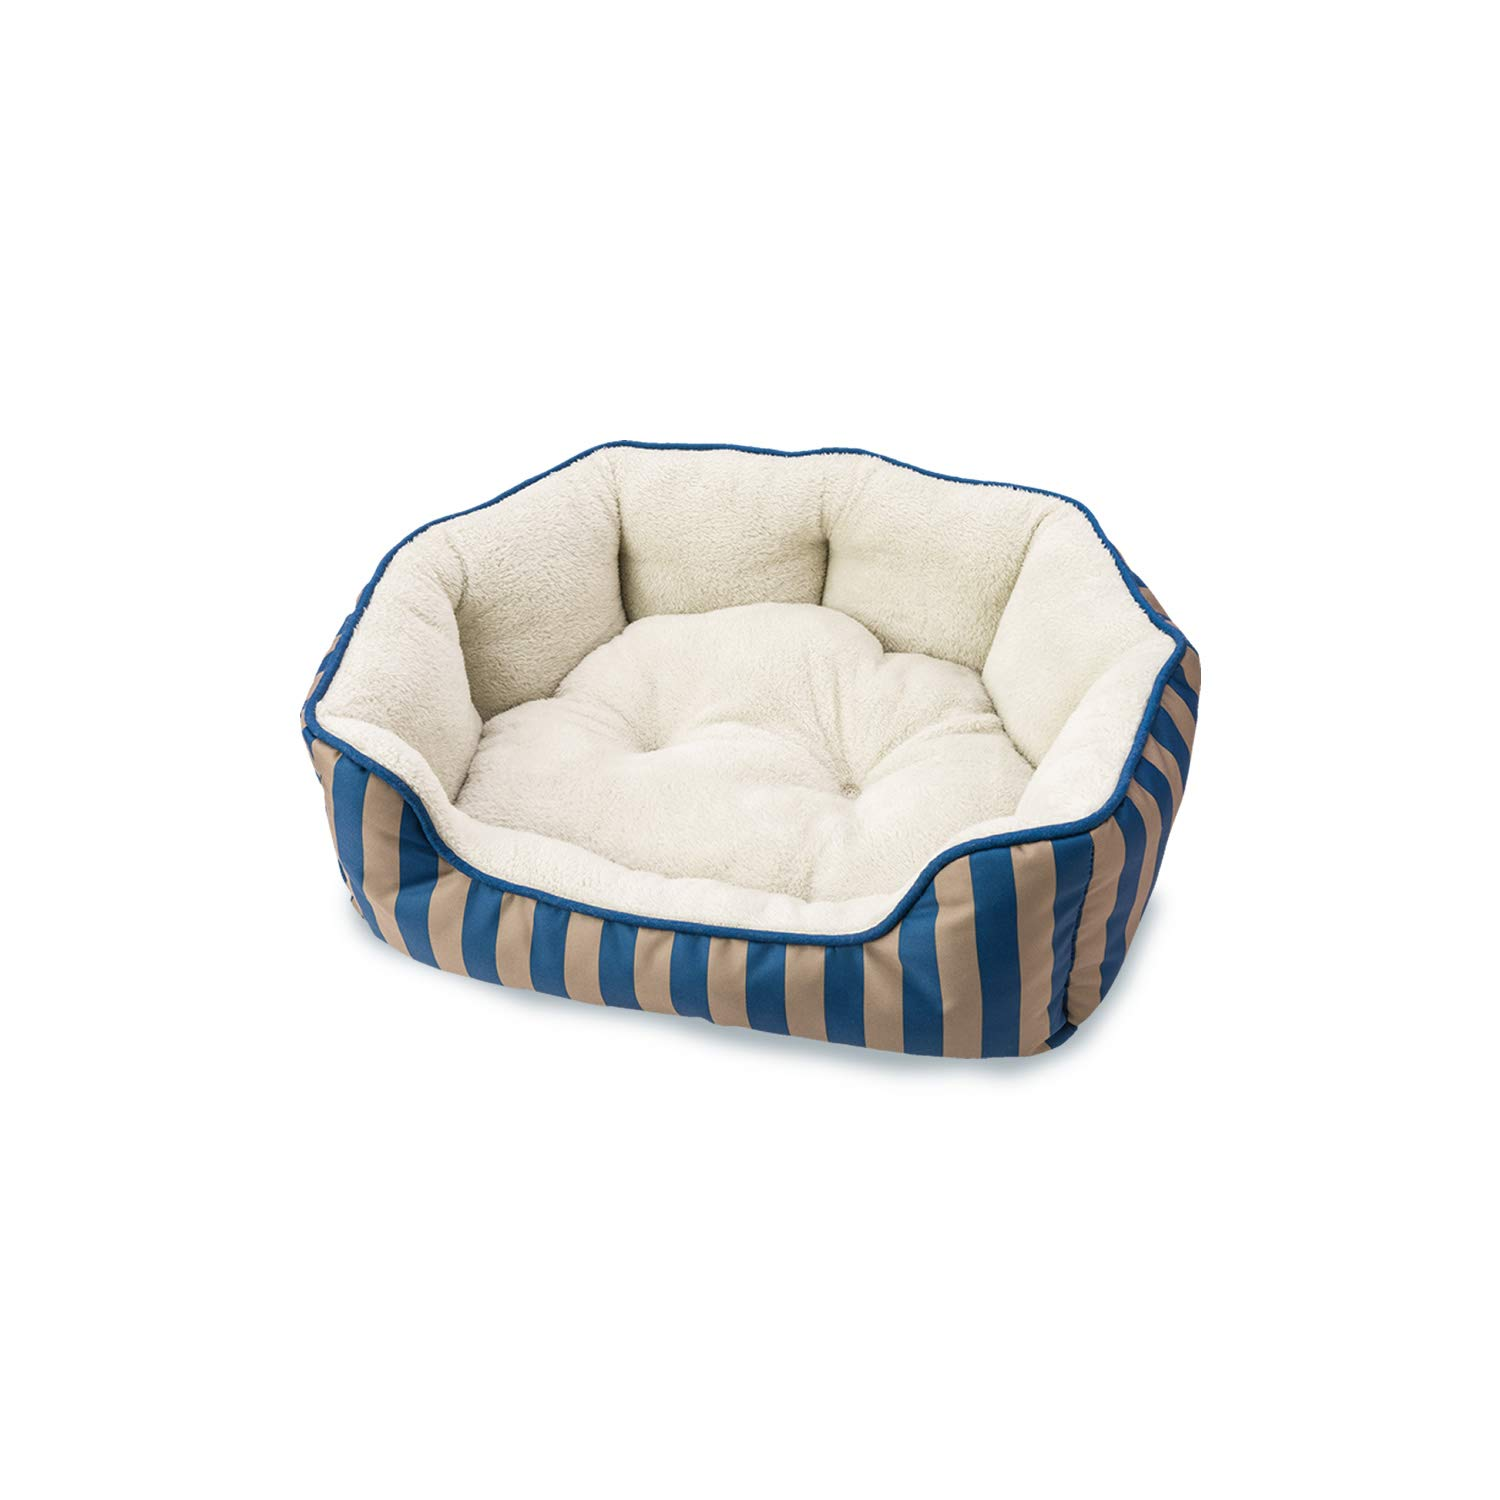 Ethical Pets 31006 Sleepzone Scallop Step in Dog Bed, 31 , bluee